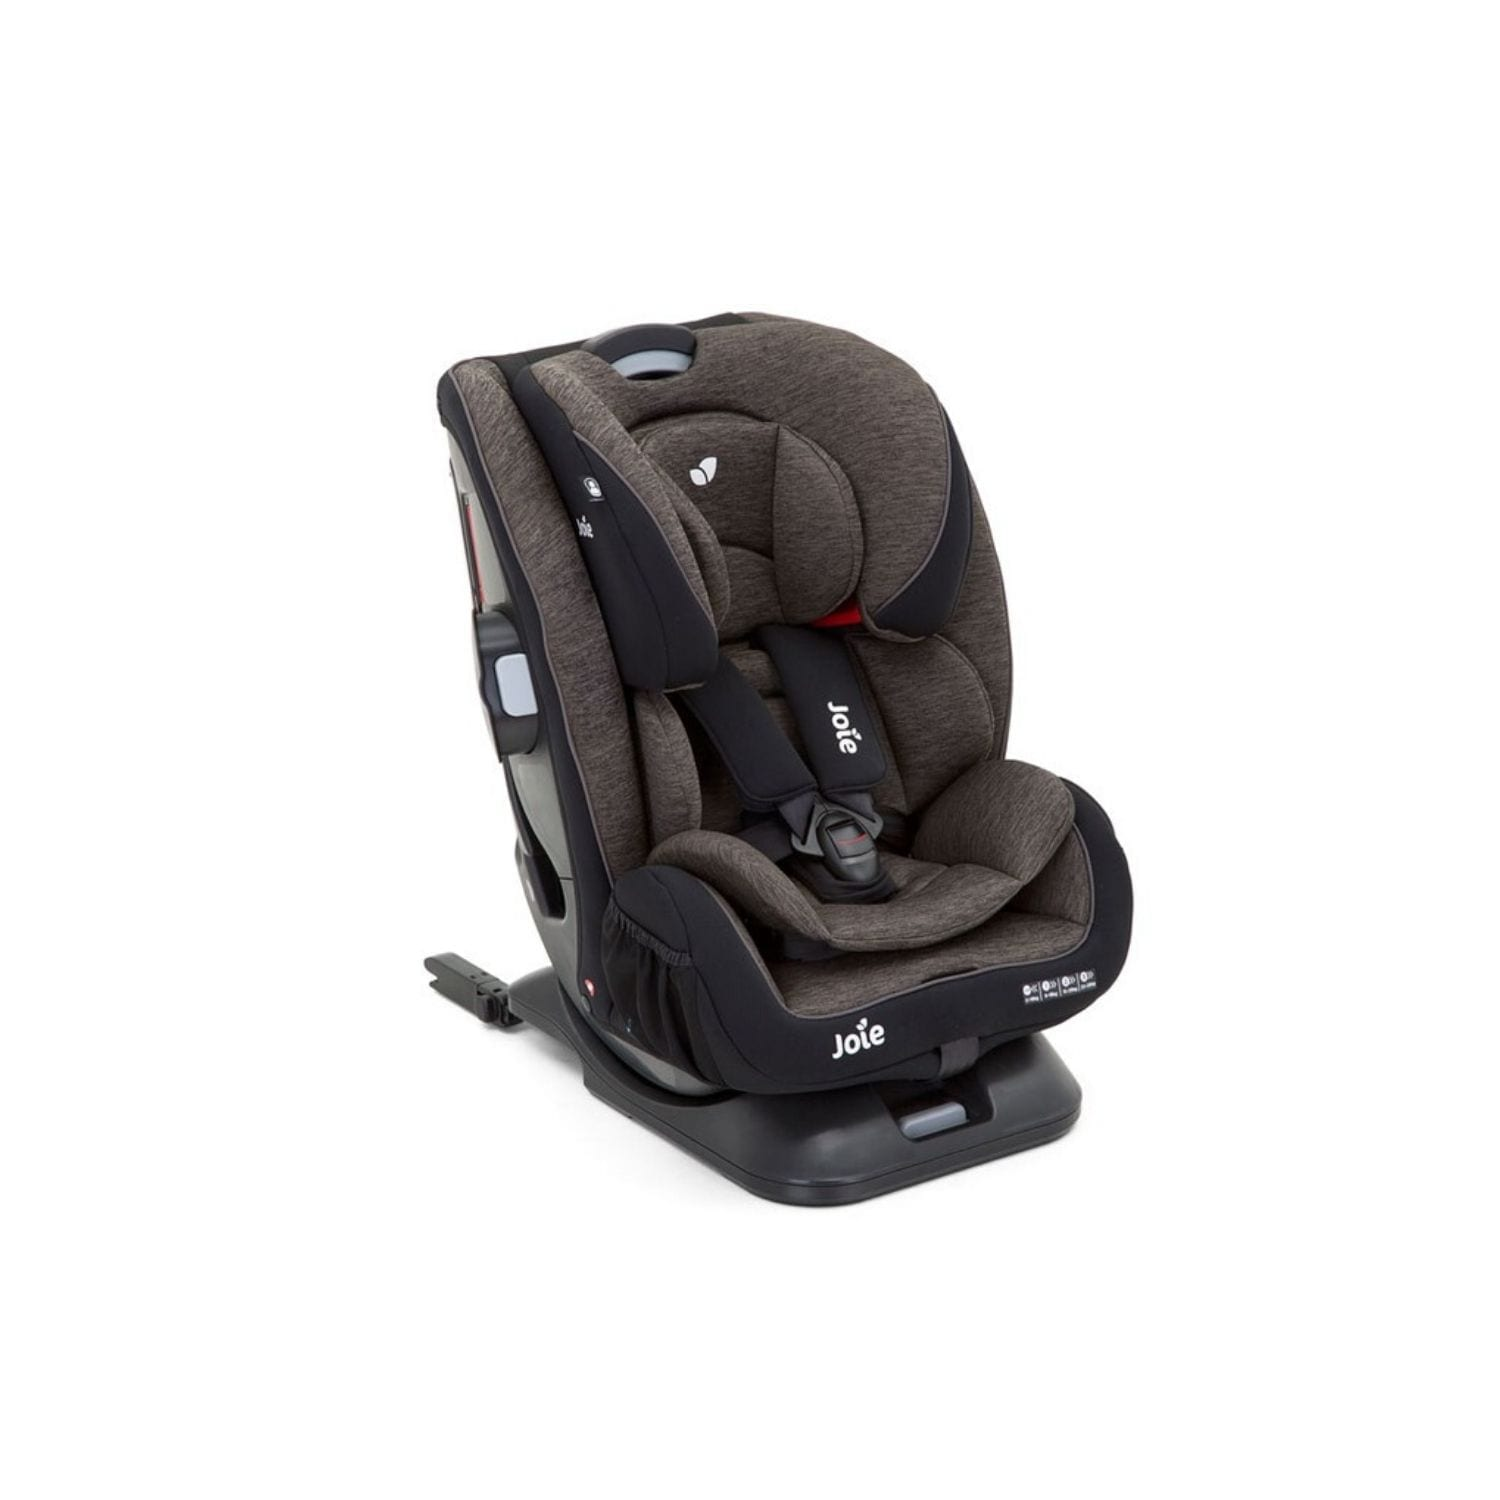 Joie Every Stage FX (ISOFIX or belt) 0+/1/2/3 product image